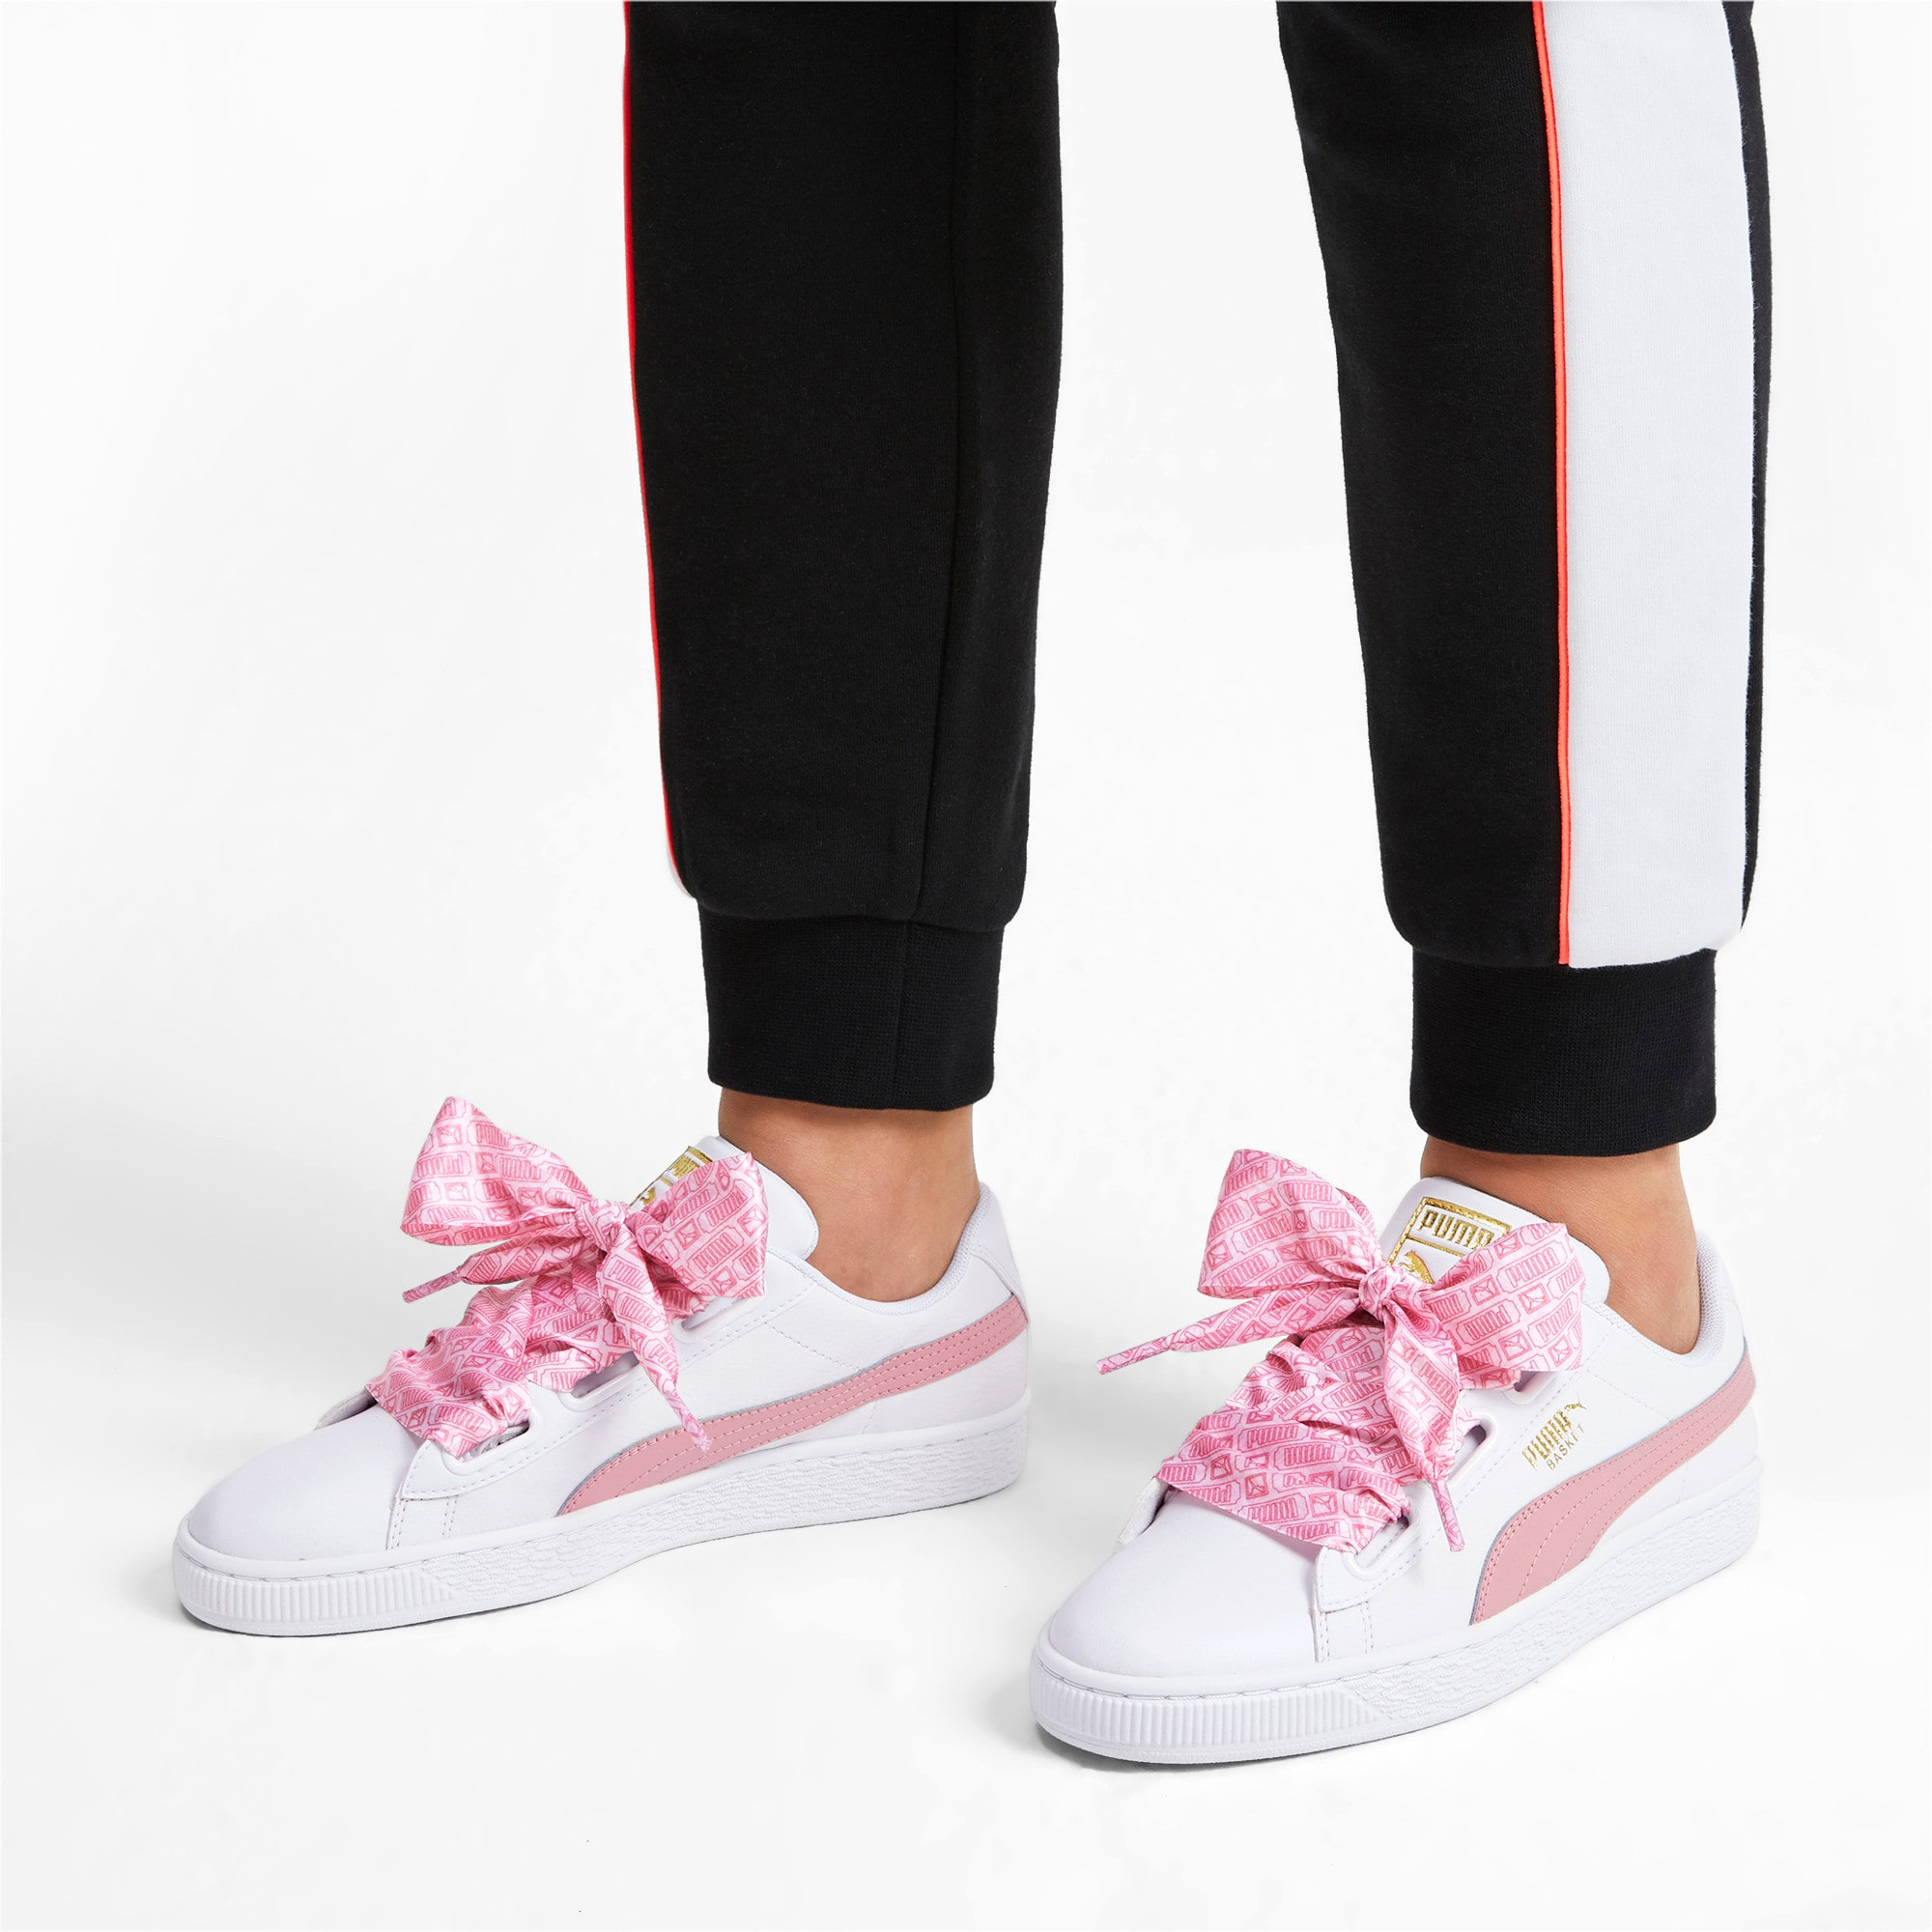 Thumbnail 3 of Basket Heart Reinvent Women's Trainers, Puma White-Bridal Rose, medium-IND